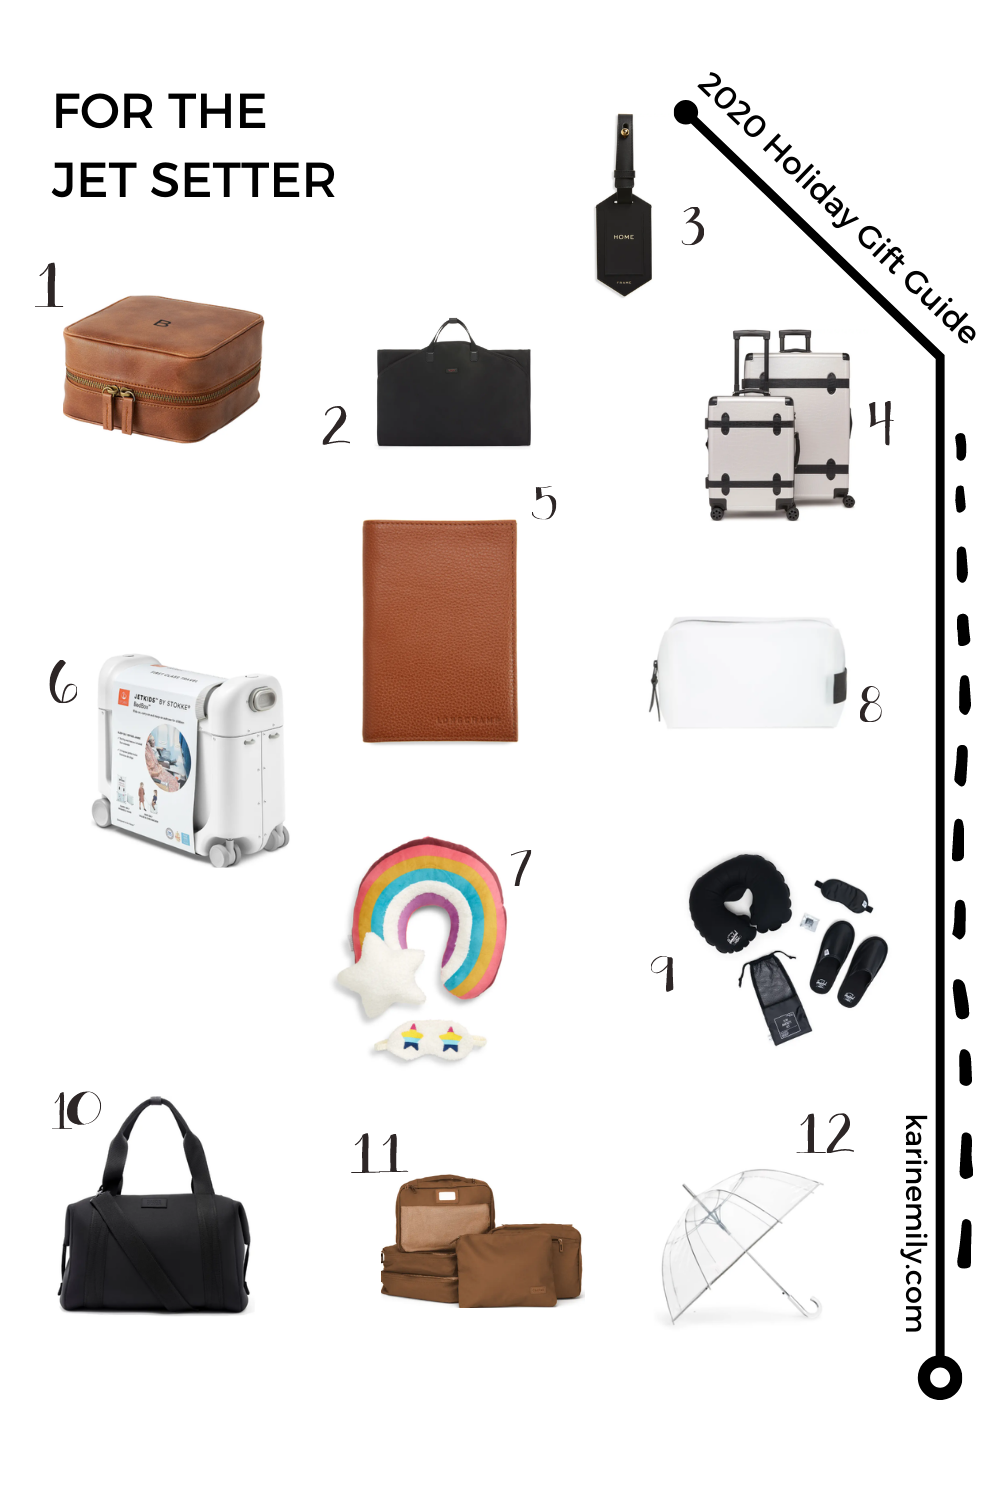 2020 Holiday Gift Guide for the Jetsetter